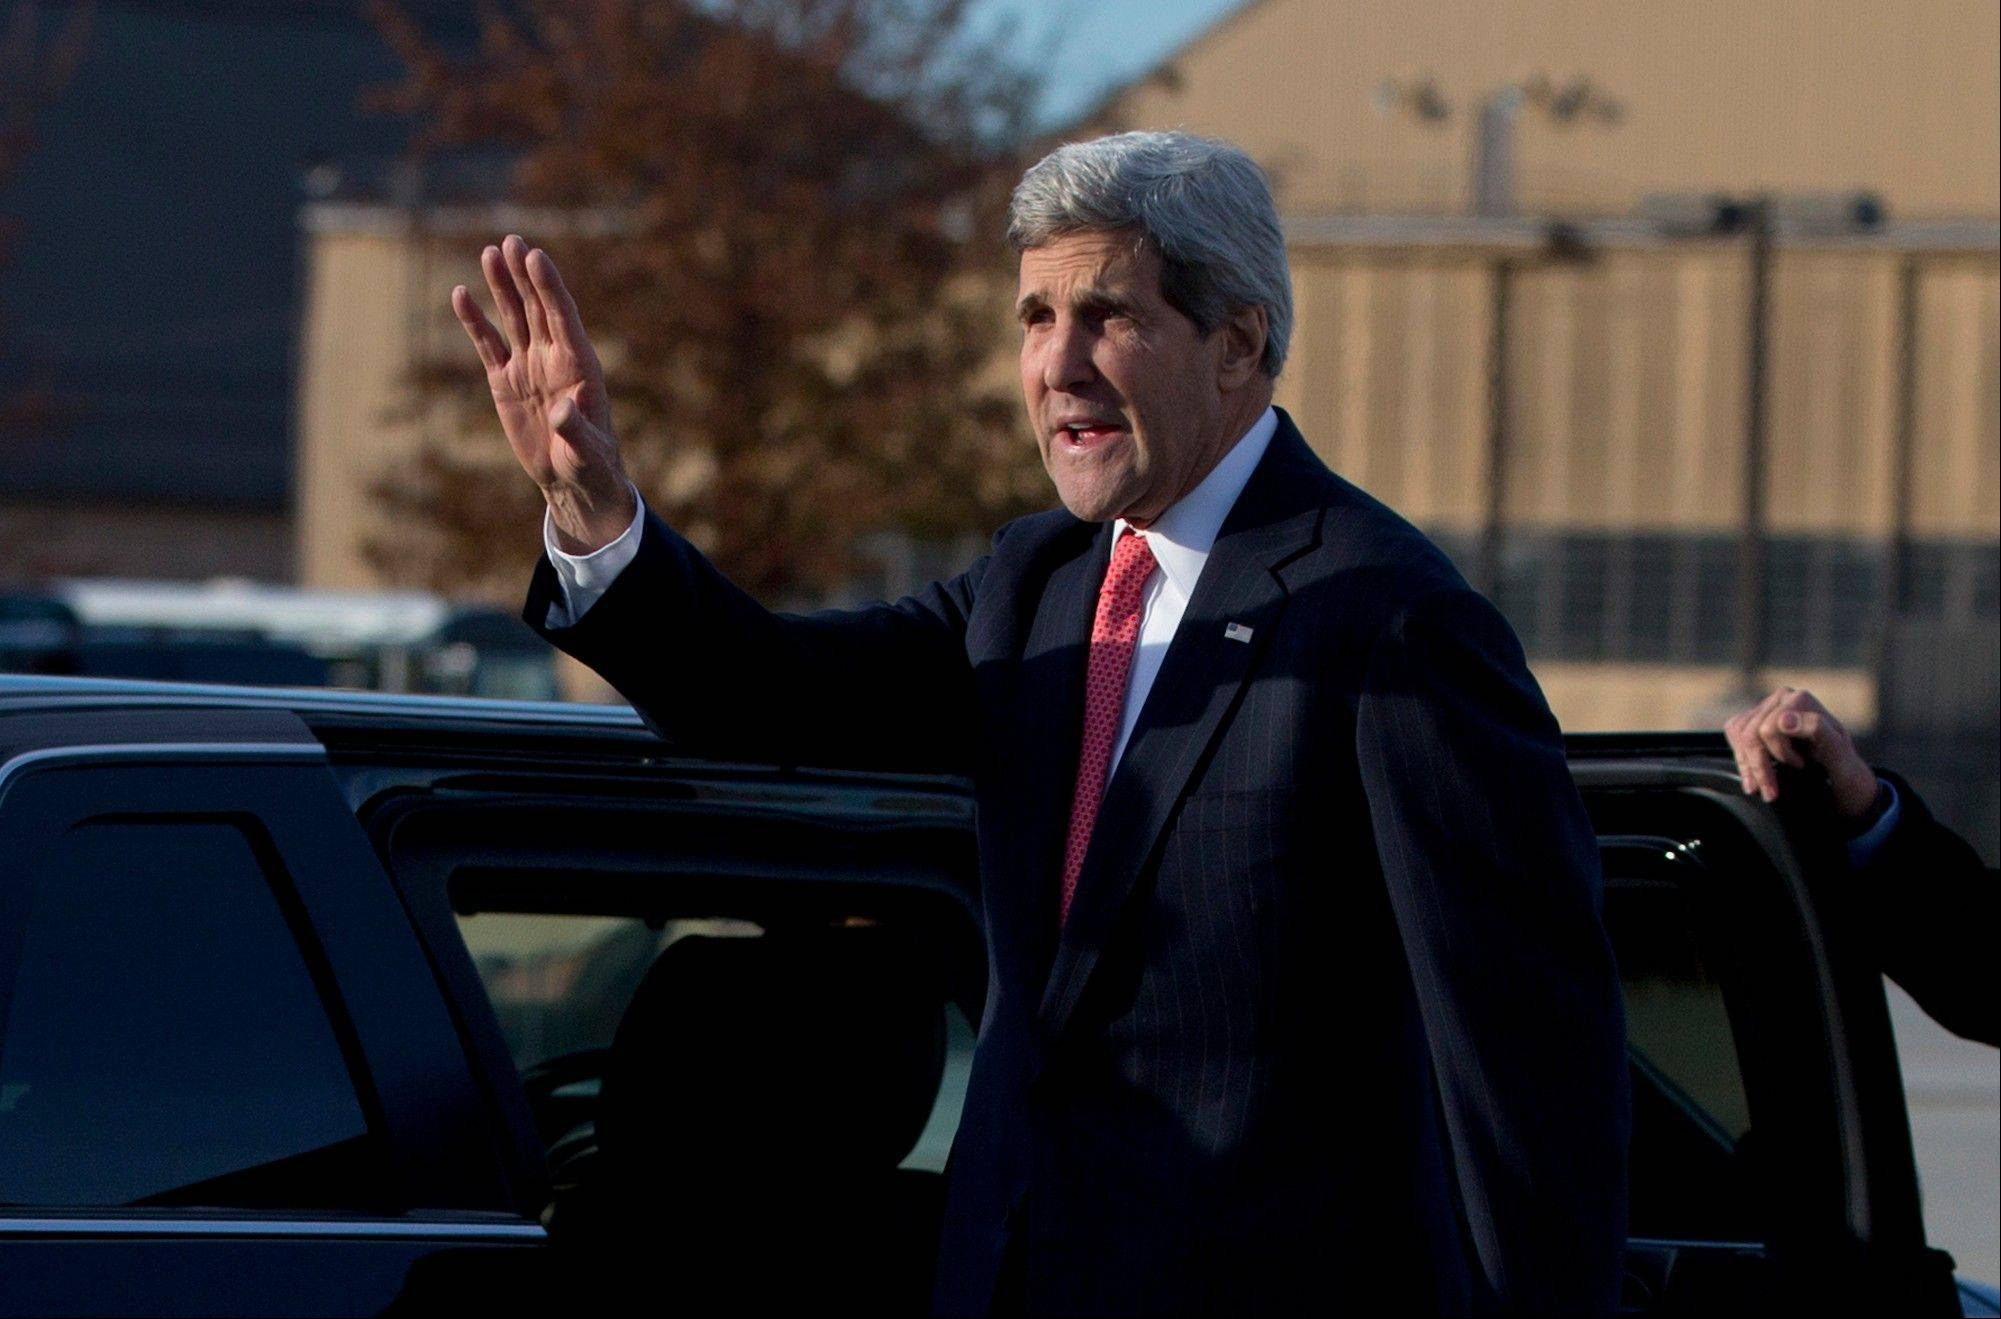 Secretary of State John Kerry waves before getting into his motorcade vehicle as he arrives at Andrews Air Force Base, Md., Monday, Nov. 25, 2013, as he returns from London. While in London Kerry had meetings with Libyan�s Prime Minister Ali Zeidan and British Foreign Secretary William Hague. Prior to London, Kerry was in Geneva, Switzerland, for the Iran nuclear talks.